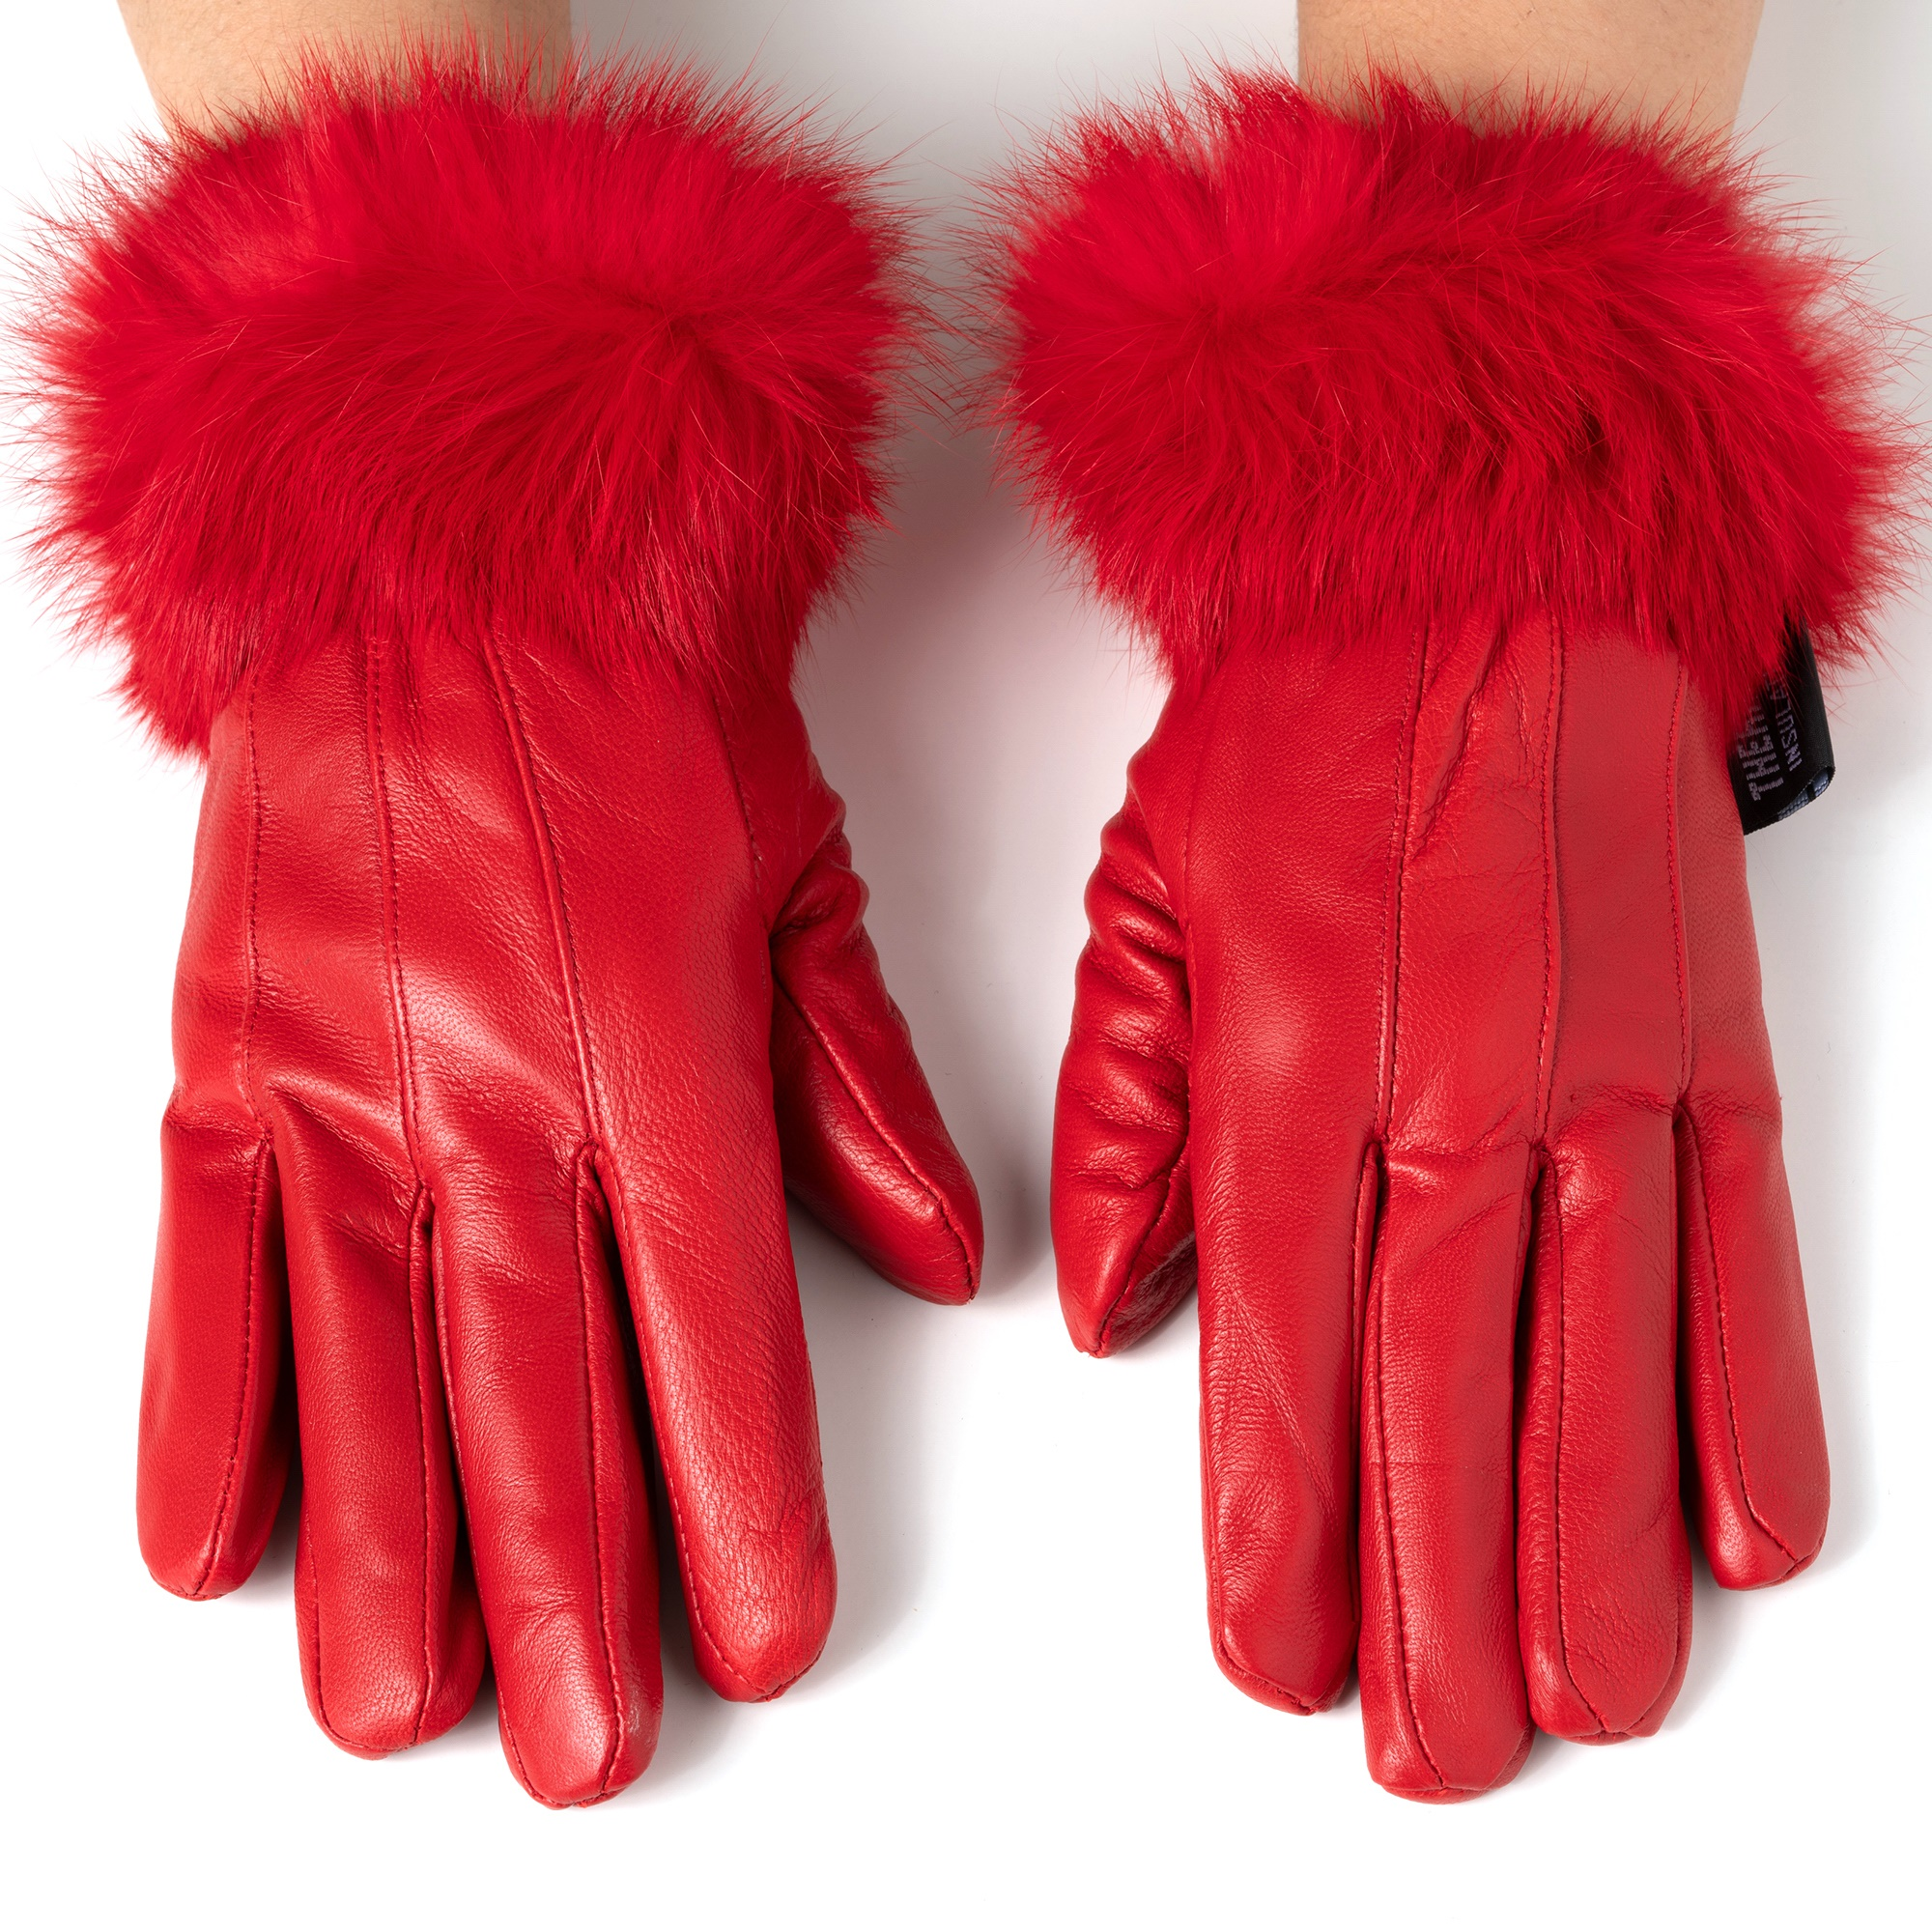 Alpine-Swiss-Womens-Dressy-Gloves-Genuine-Leather-Thermal-Lining-Fur-Trim-Cuff thumbnail 30